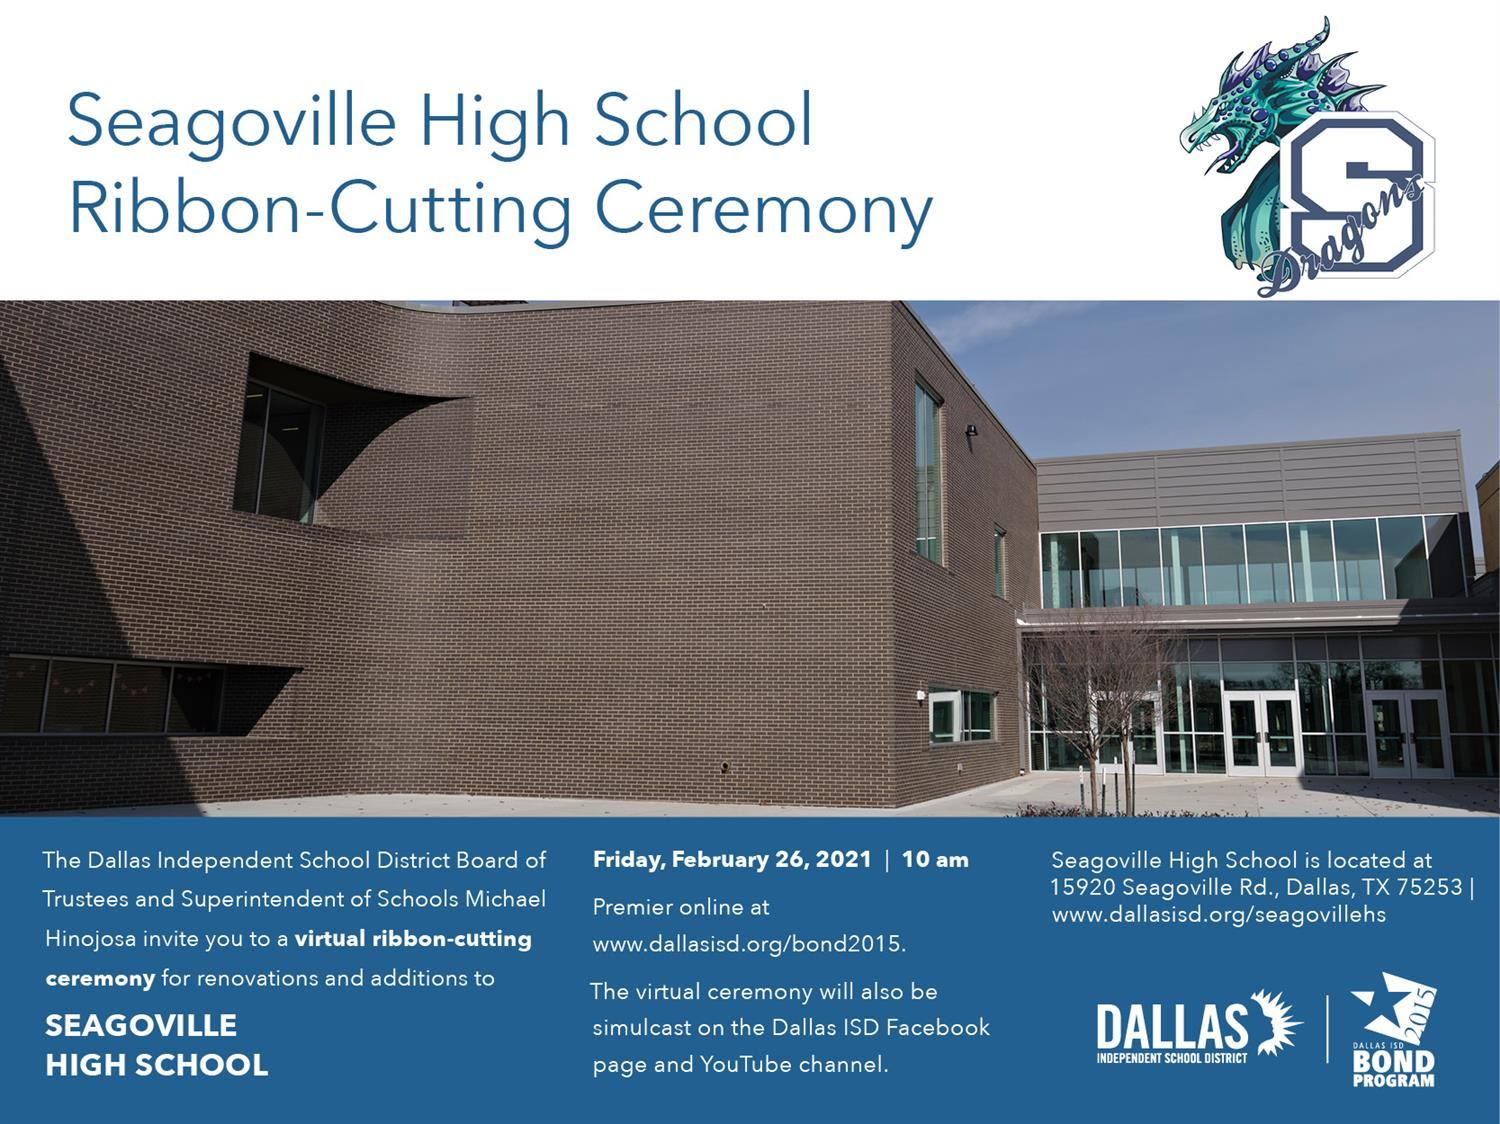 Celebrate Seagoville High School Virtual Ribbon Cutting